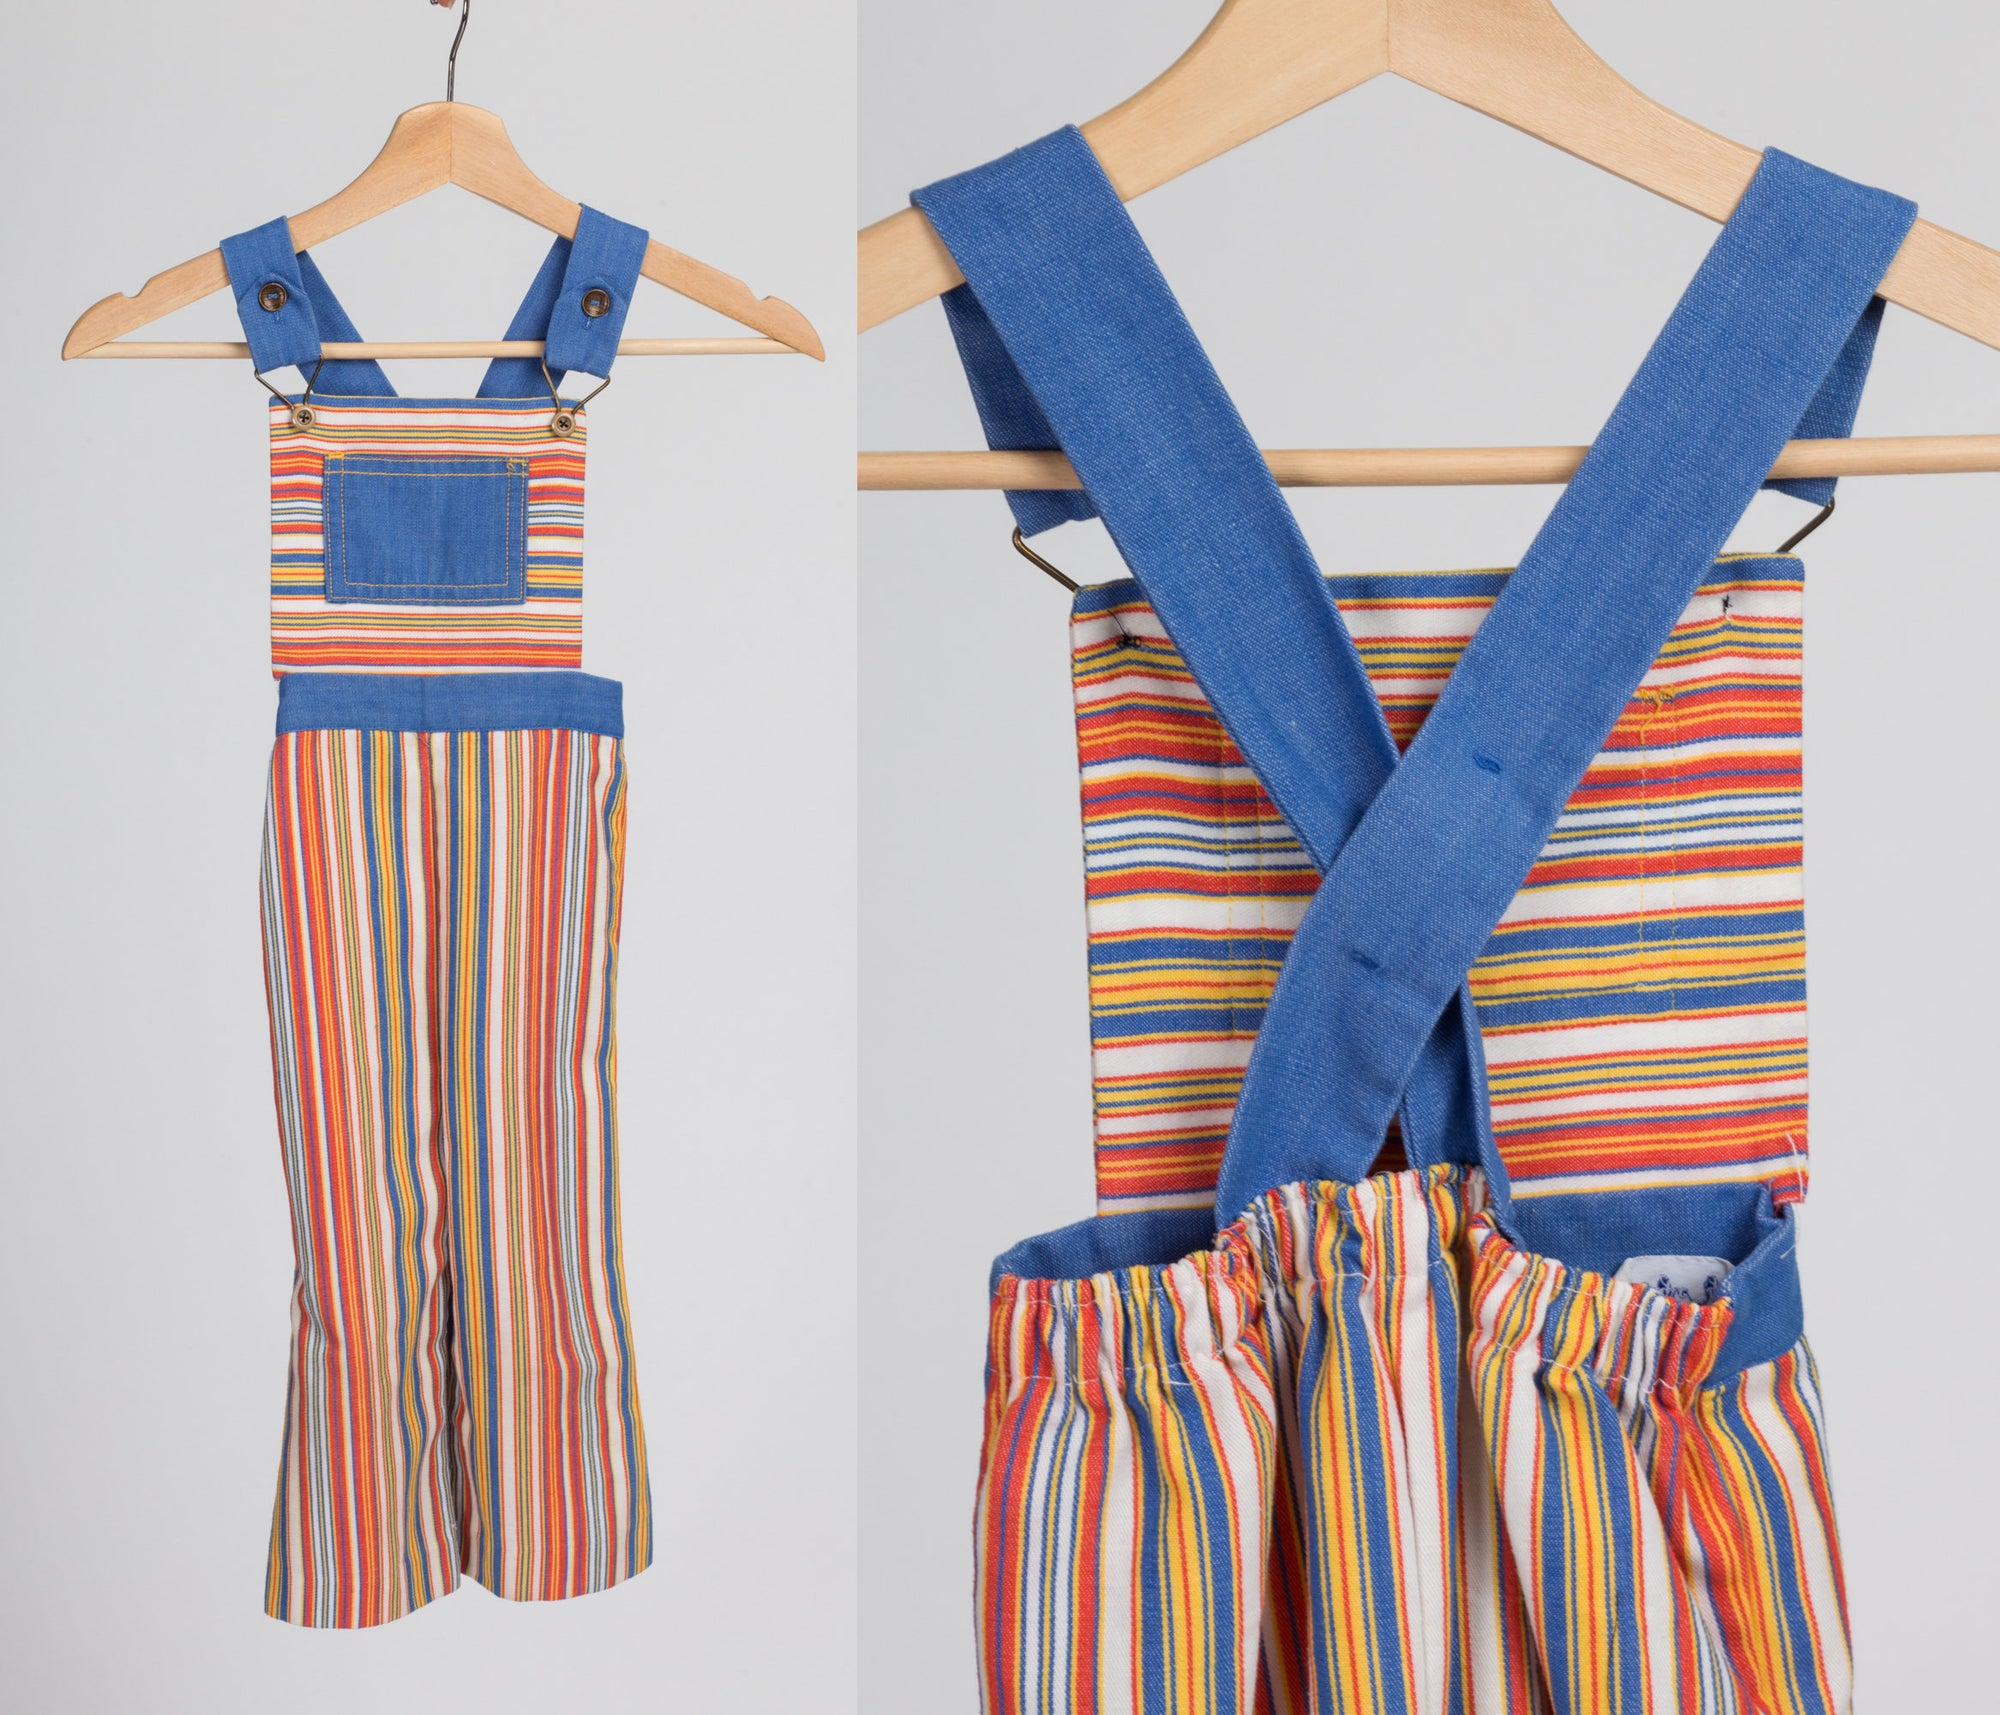 70s Striped Toddler Overalls - Size 2T